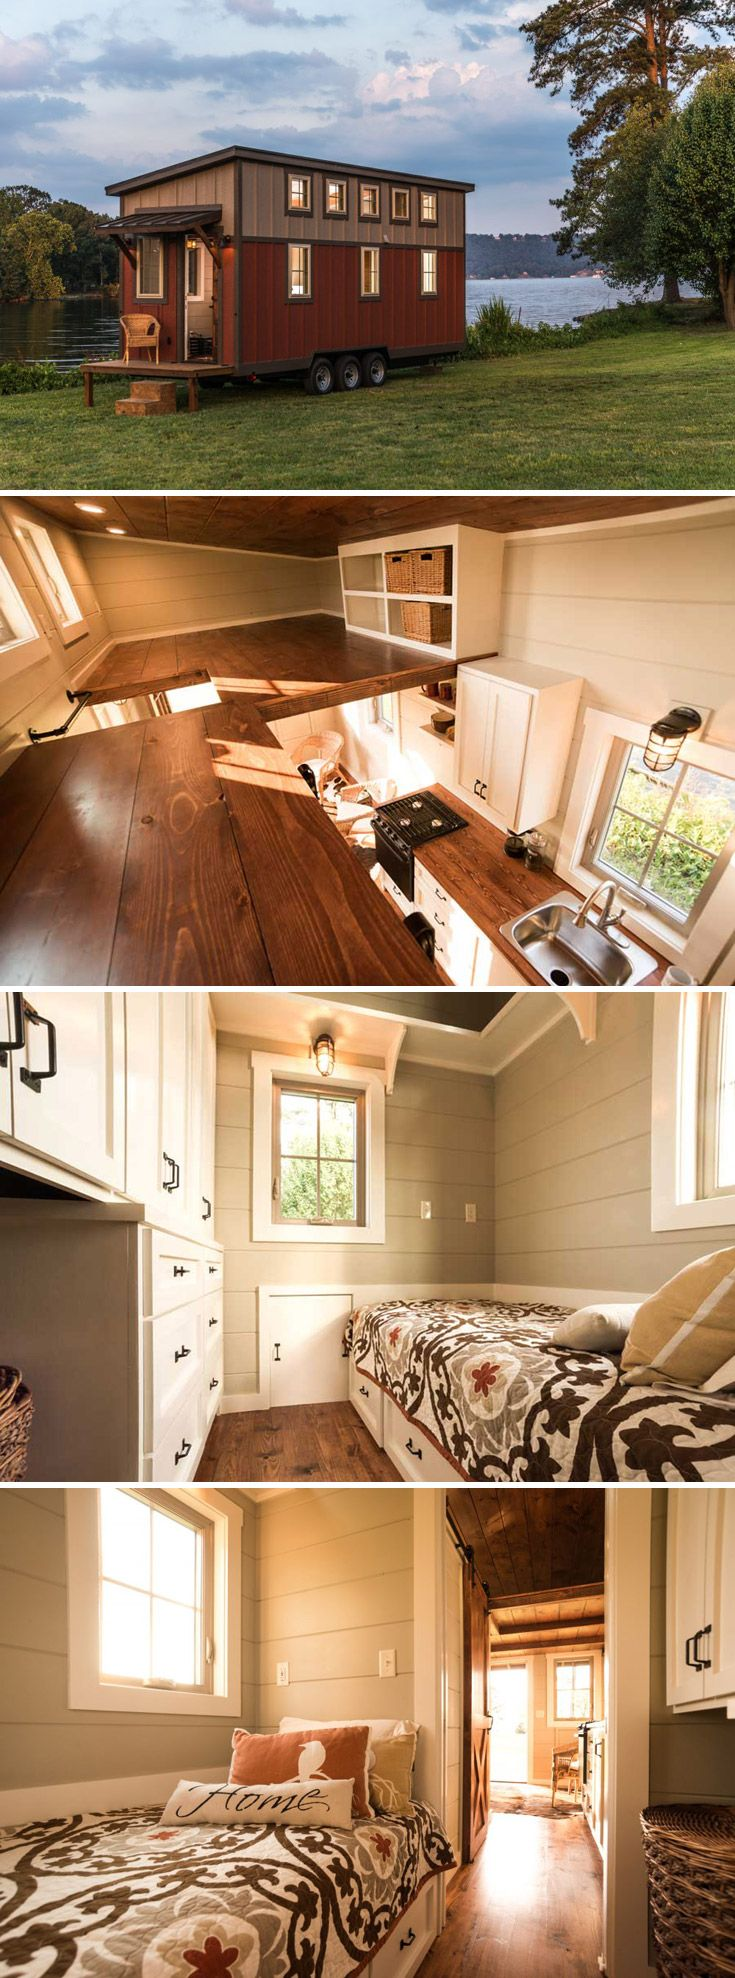 1000 ideas about tiny house on wheels on pinterest tiny for 2 bathroom tiny house